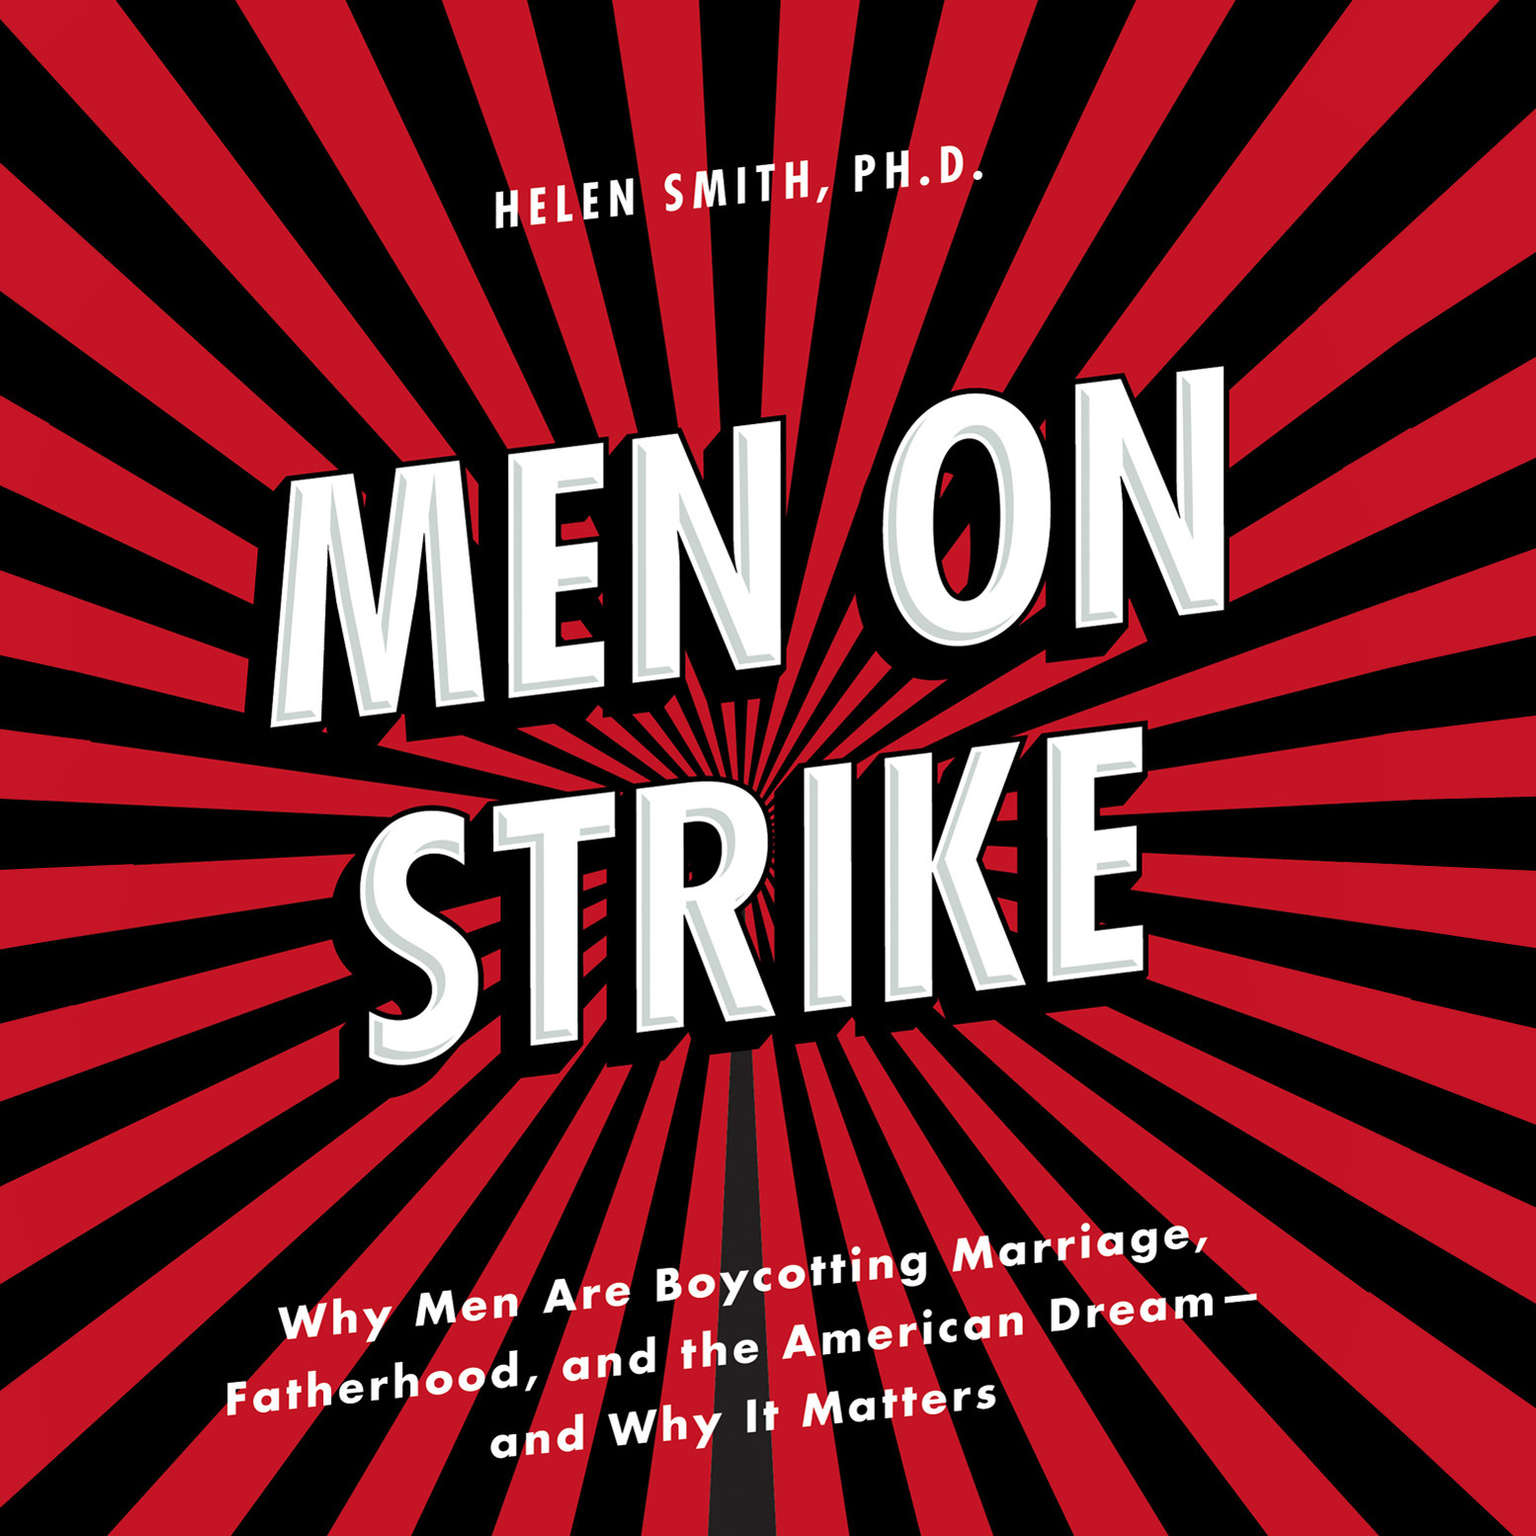 Men on Strike: Why Men Are Boycotting Marriage, Fatherhood, and the American Dream - and Why It Matters Audiobook, by Helen Smith